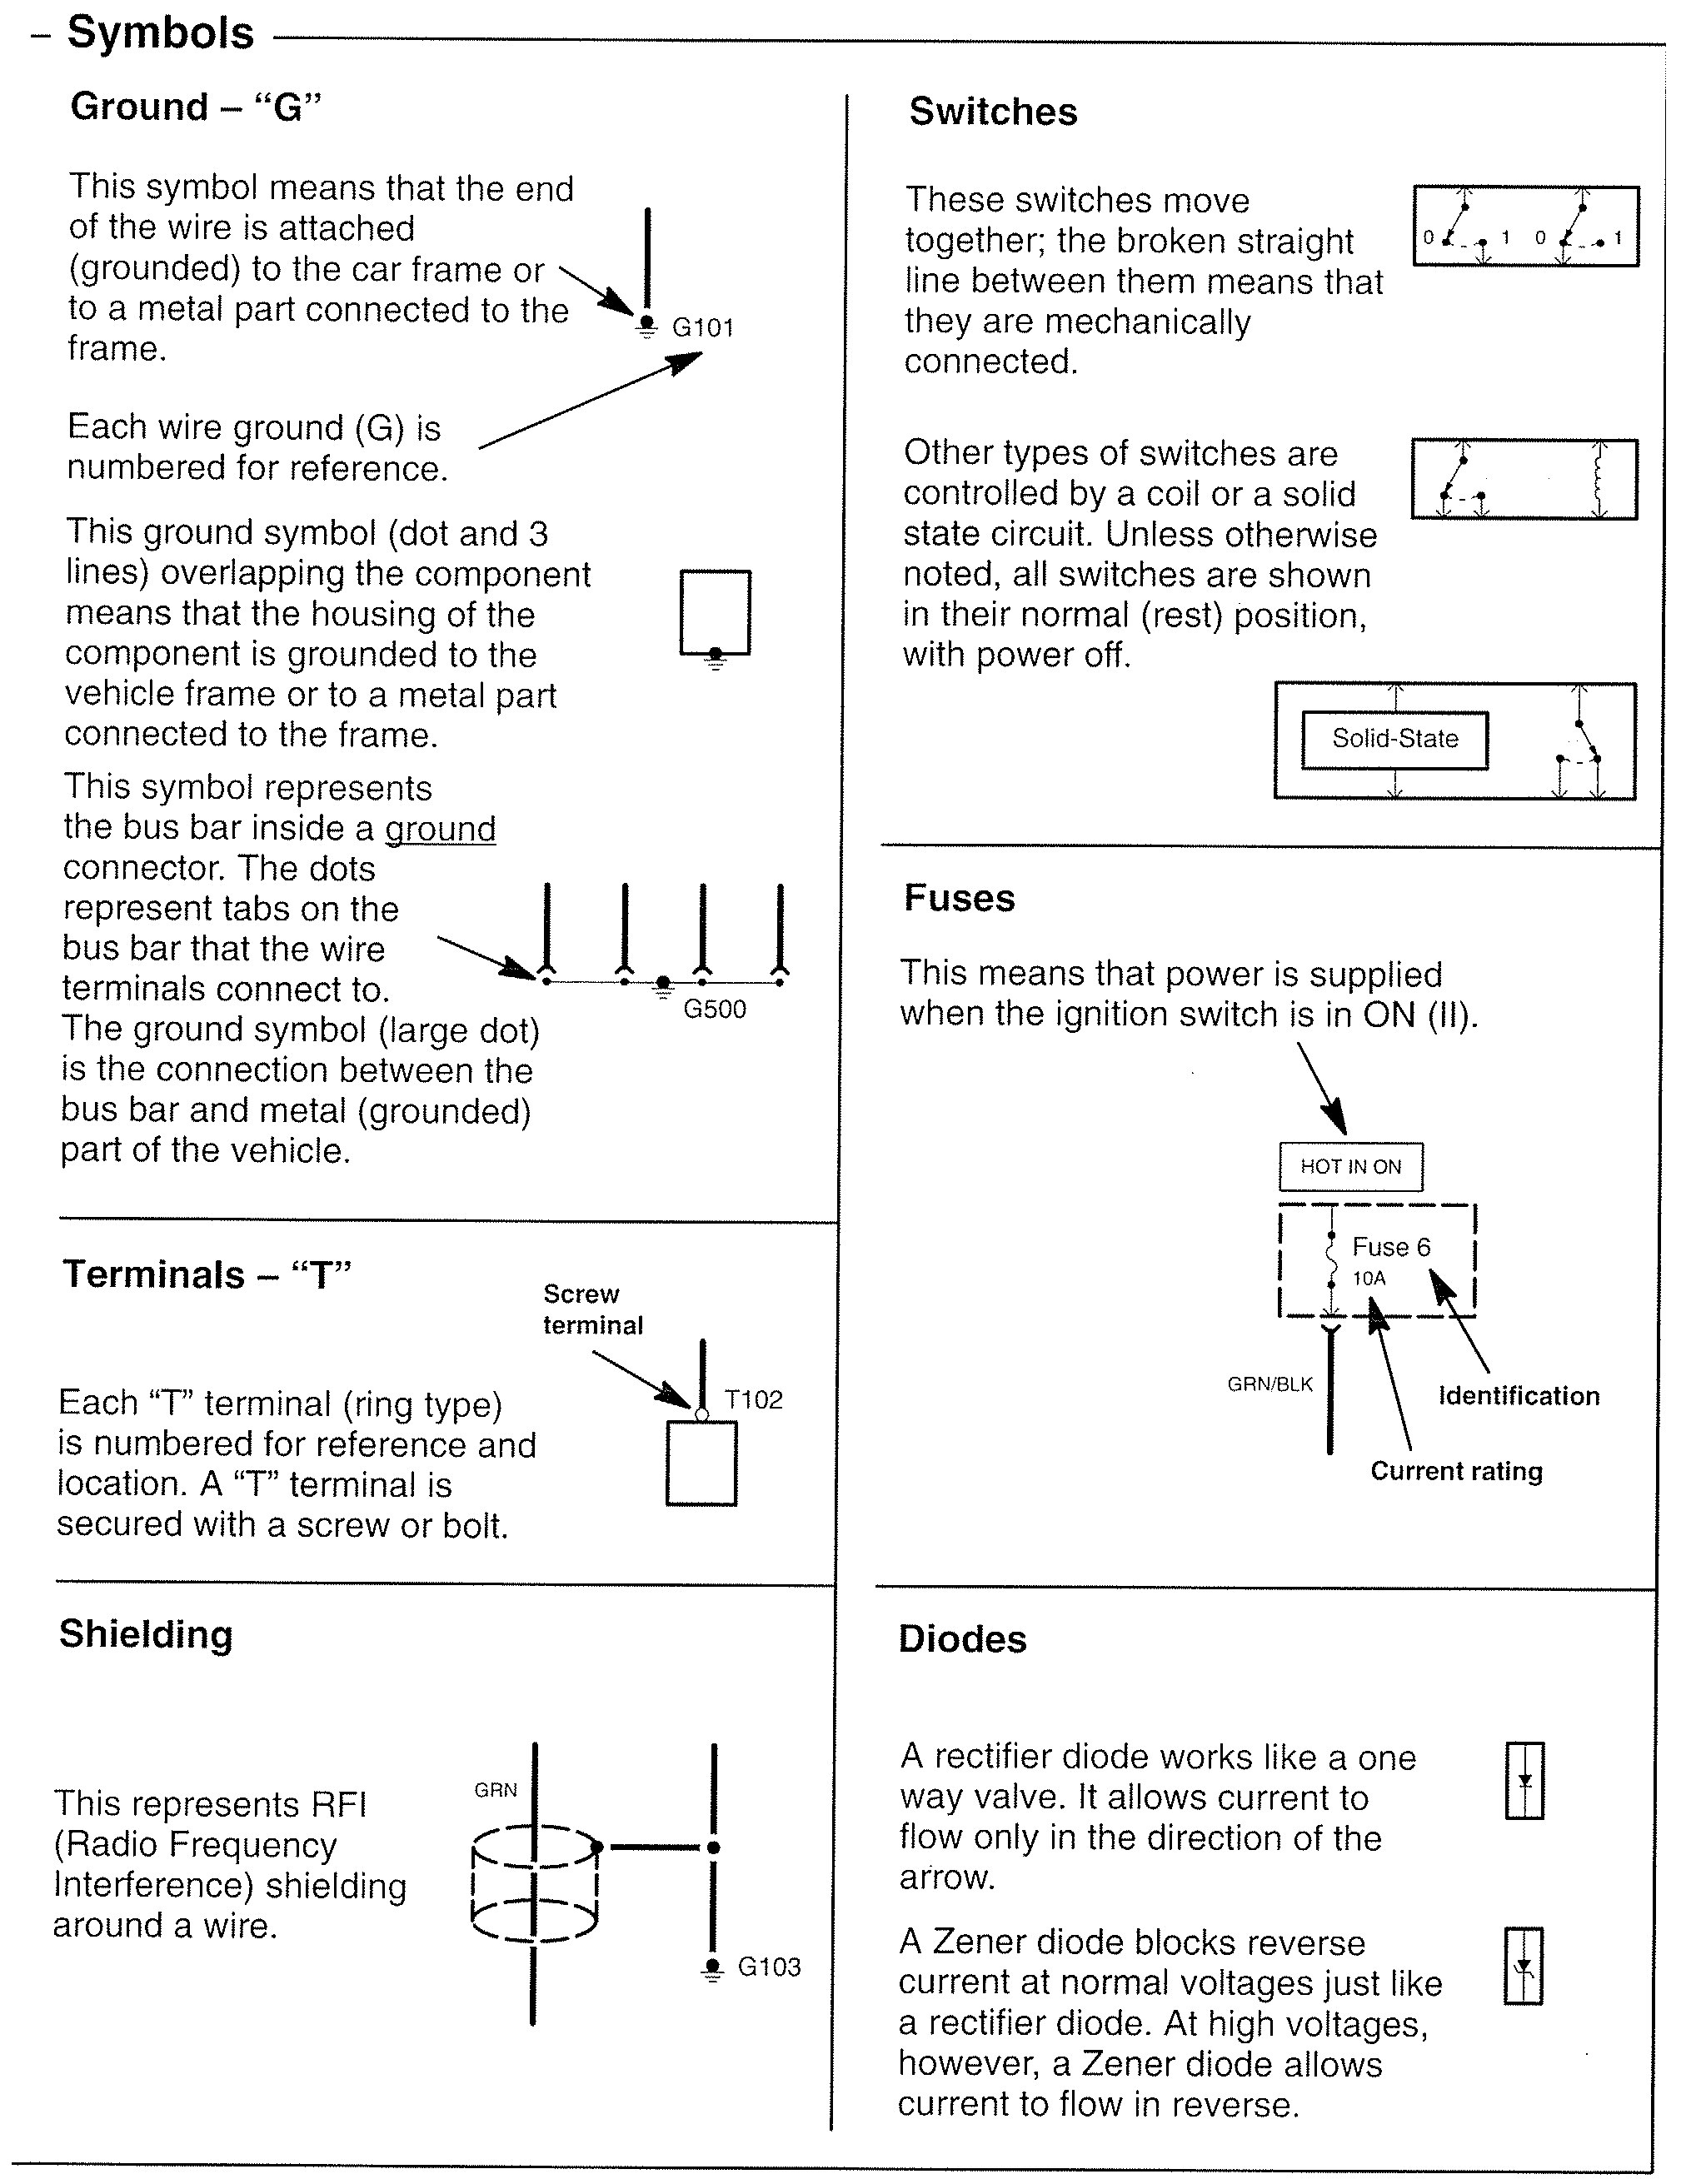 Acura Rl 2007 2008 Wiring Diagrams Symbol Id Carknowledge For Ground On Diagram 1 Part 3